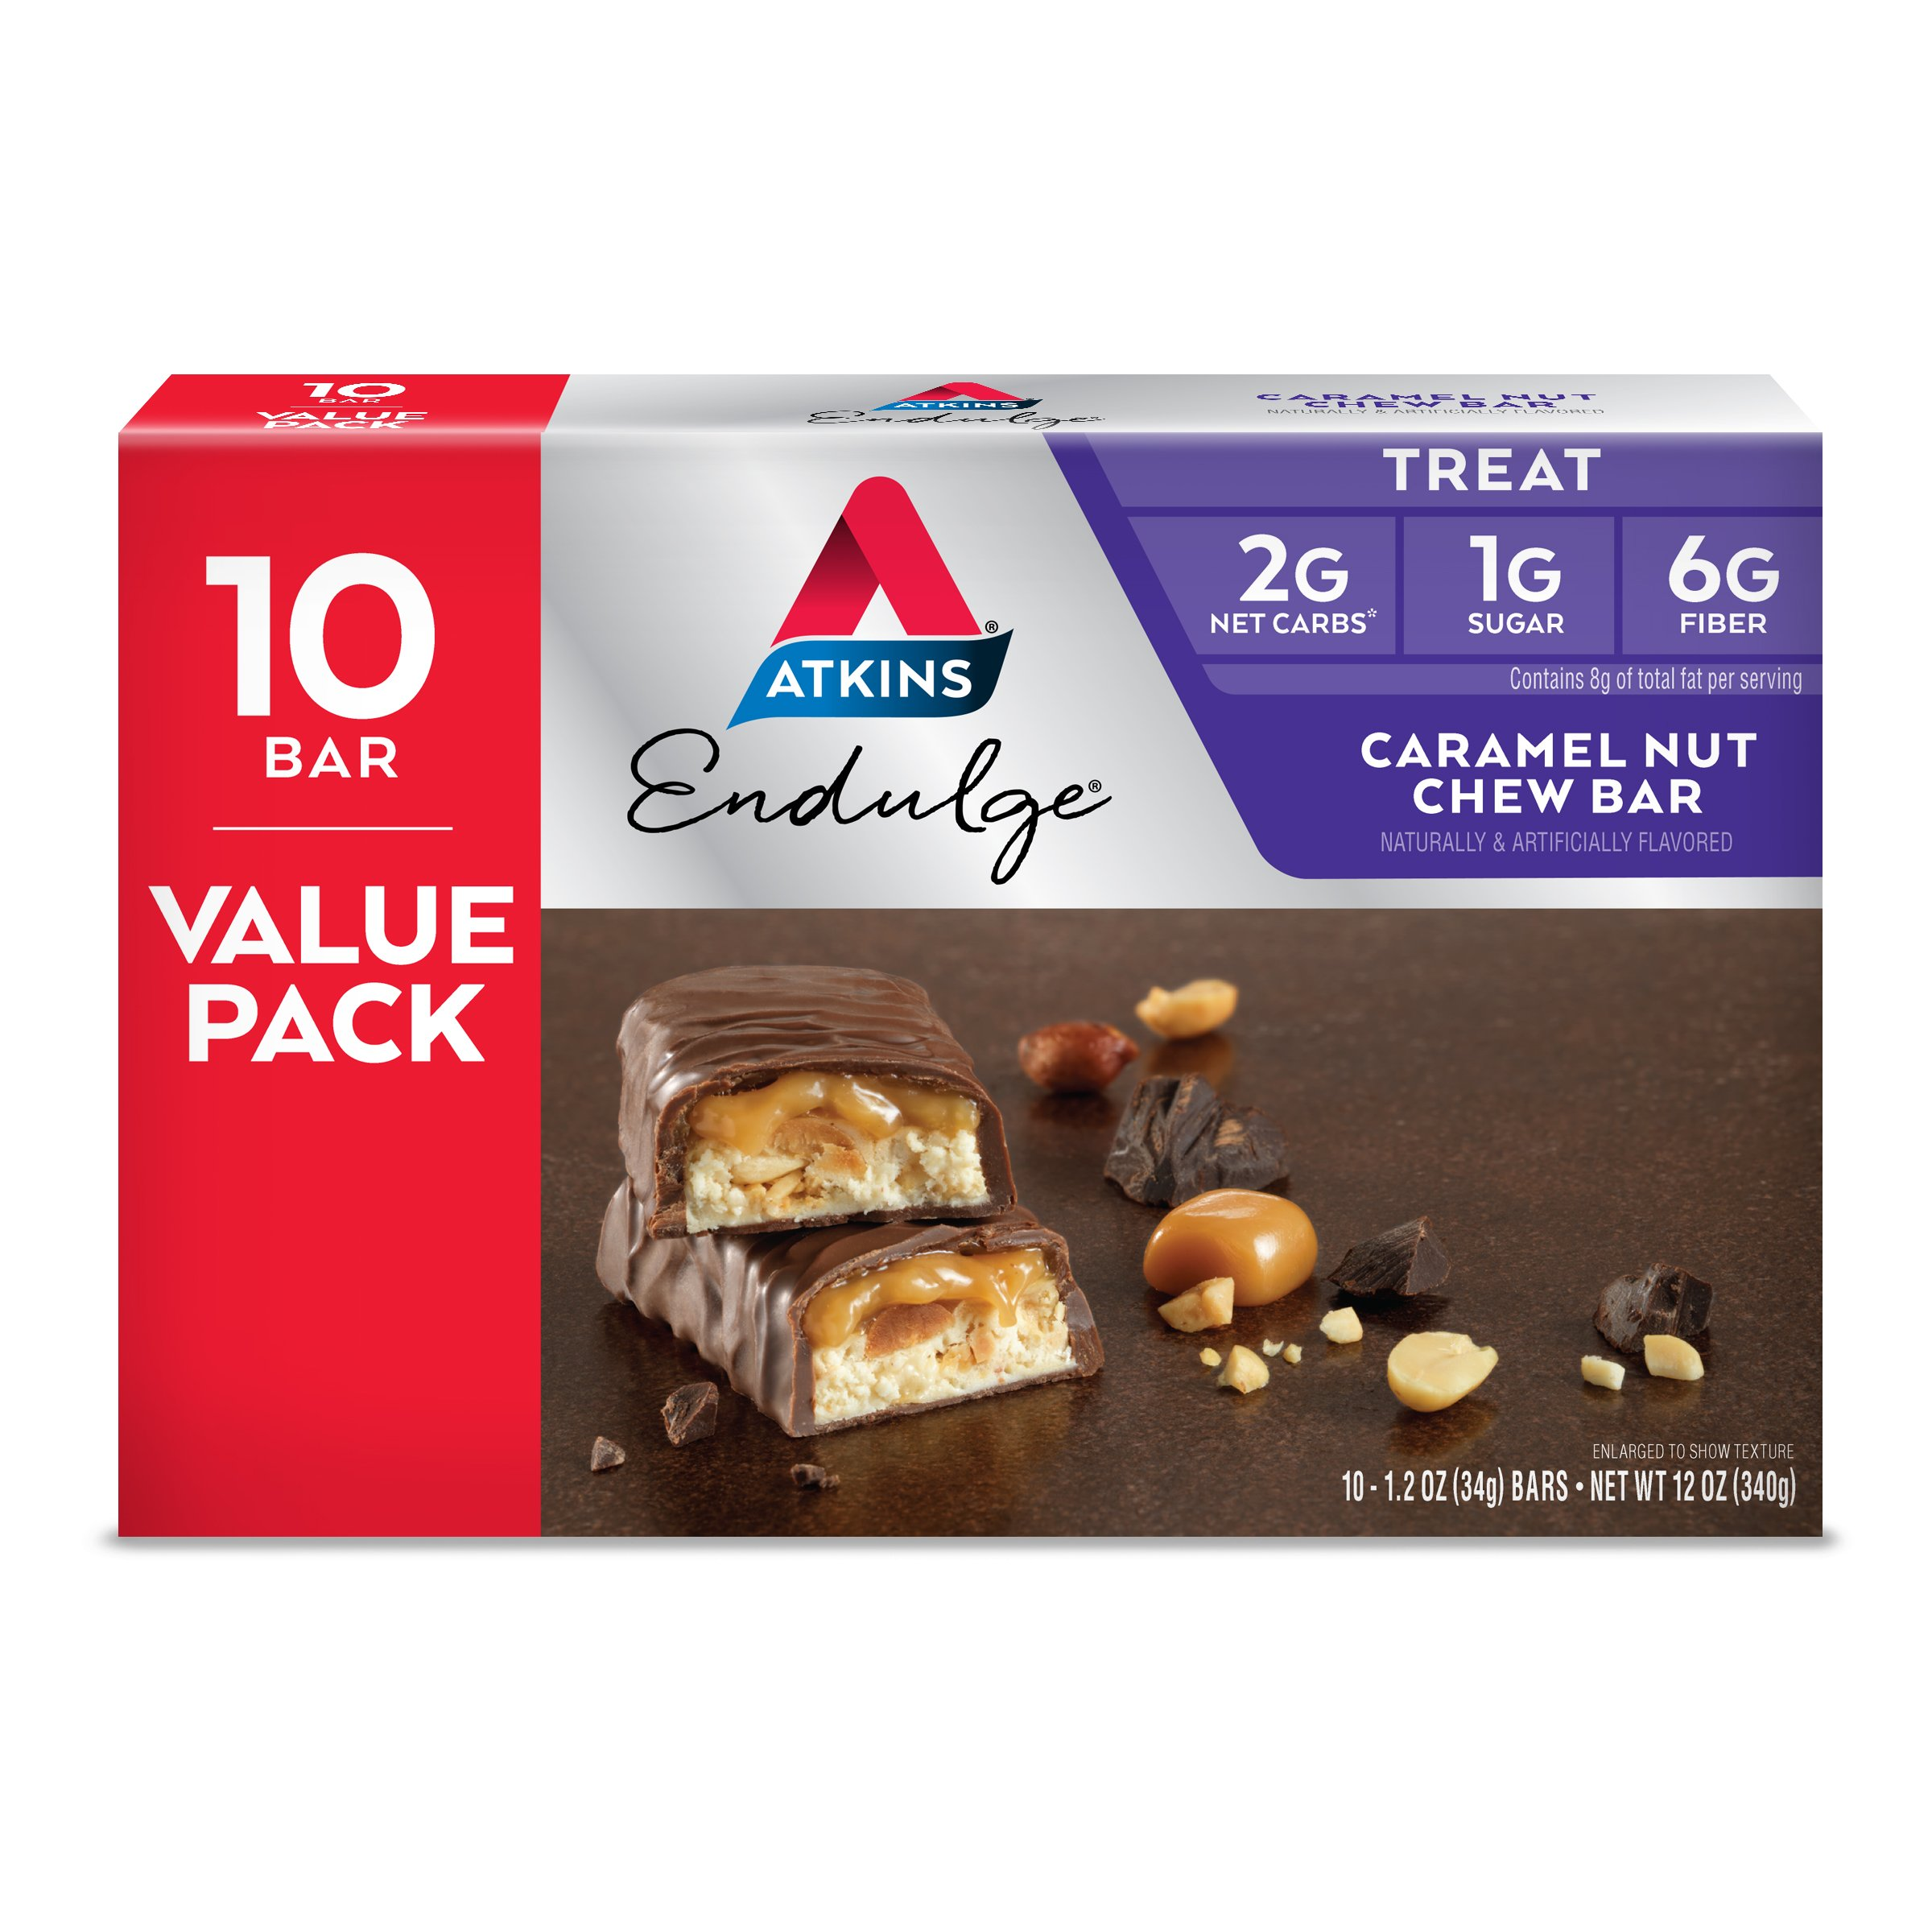 Atkins Endulge Treat, Caramel Nut Chew Bar, Keto Friendly, 10 Count (Value Pack) by Atkins